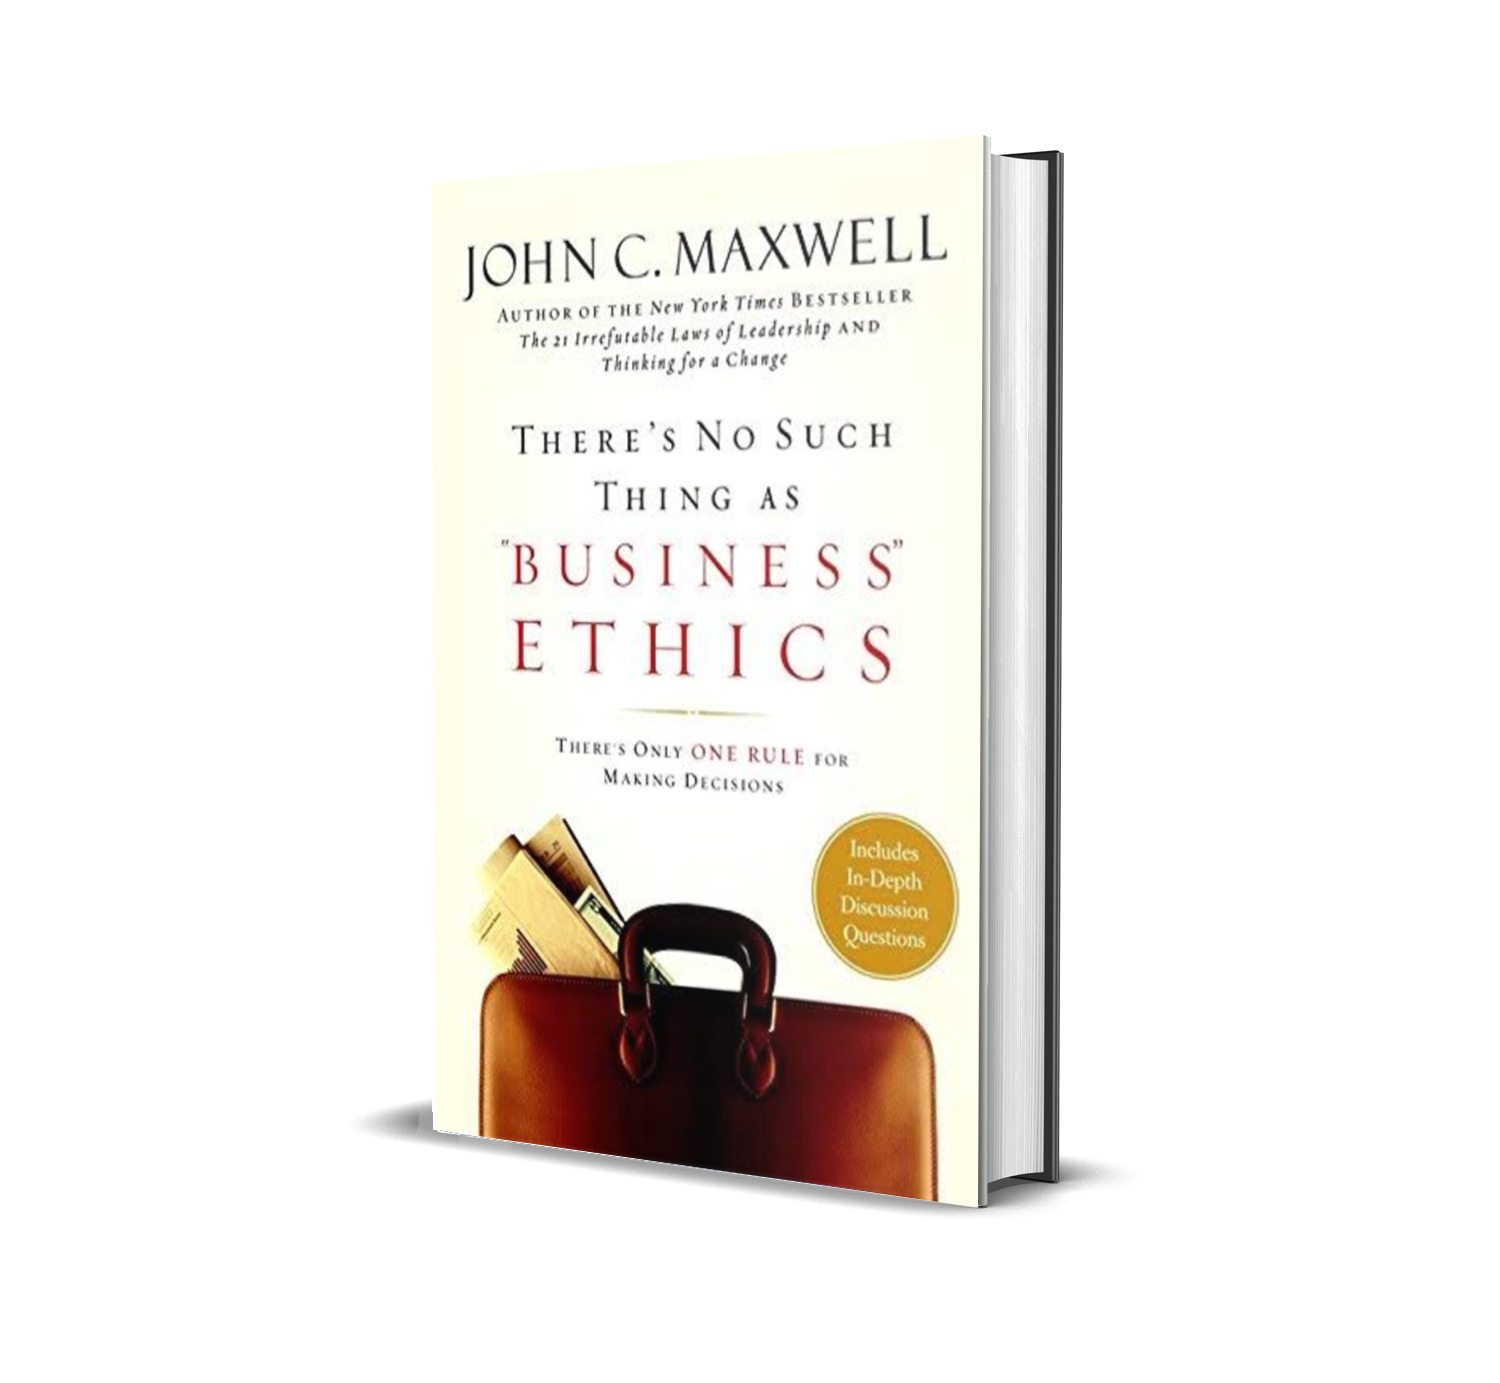 There's no such thing as business ethics- John C Maxwell